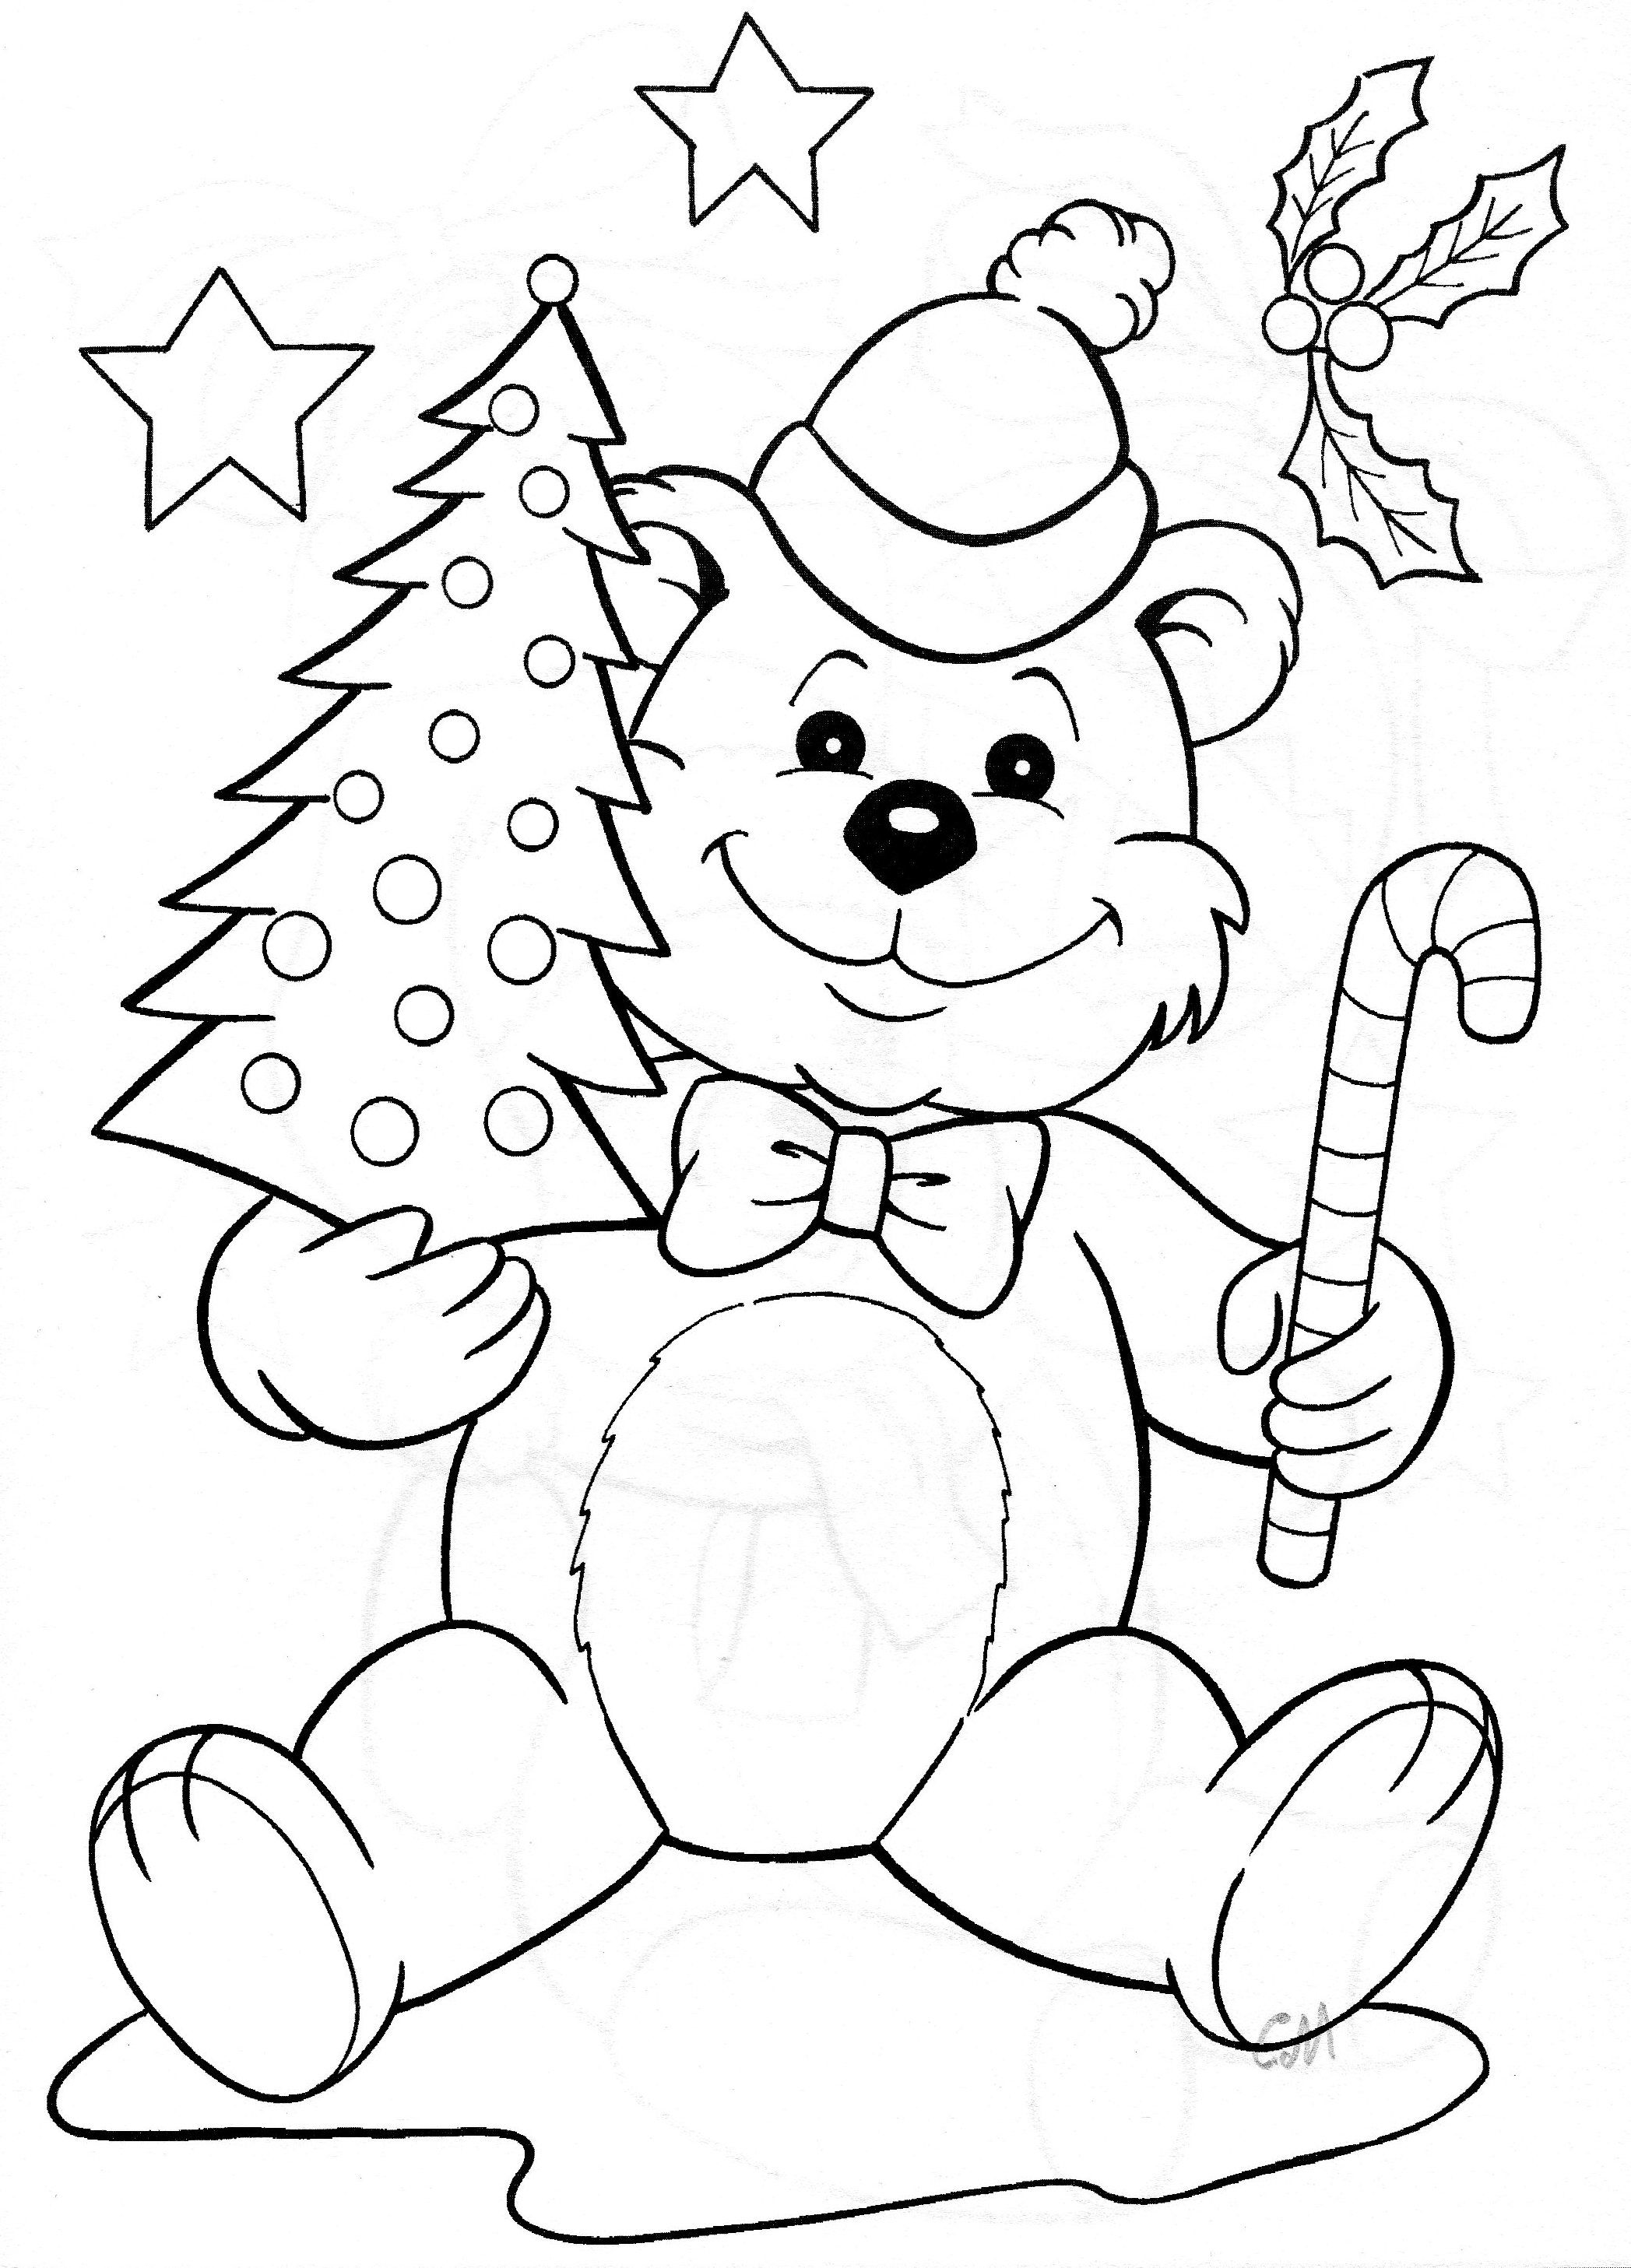 Christmas Coloring Pages Santa Coloring Pages Christmas Coloring Pages Free Christmas Coloring Pages